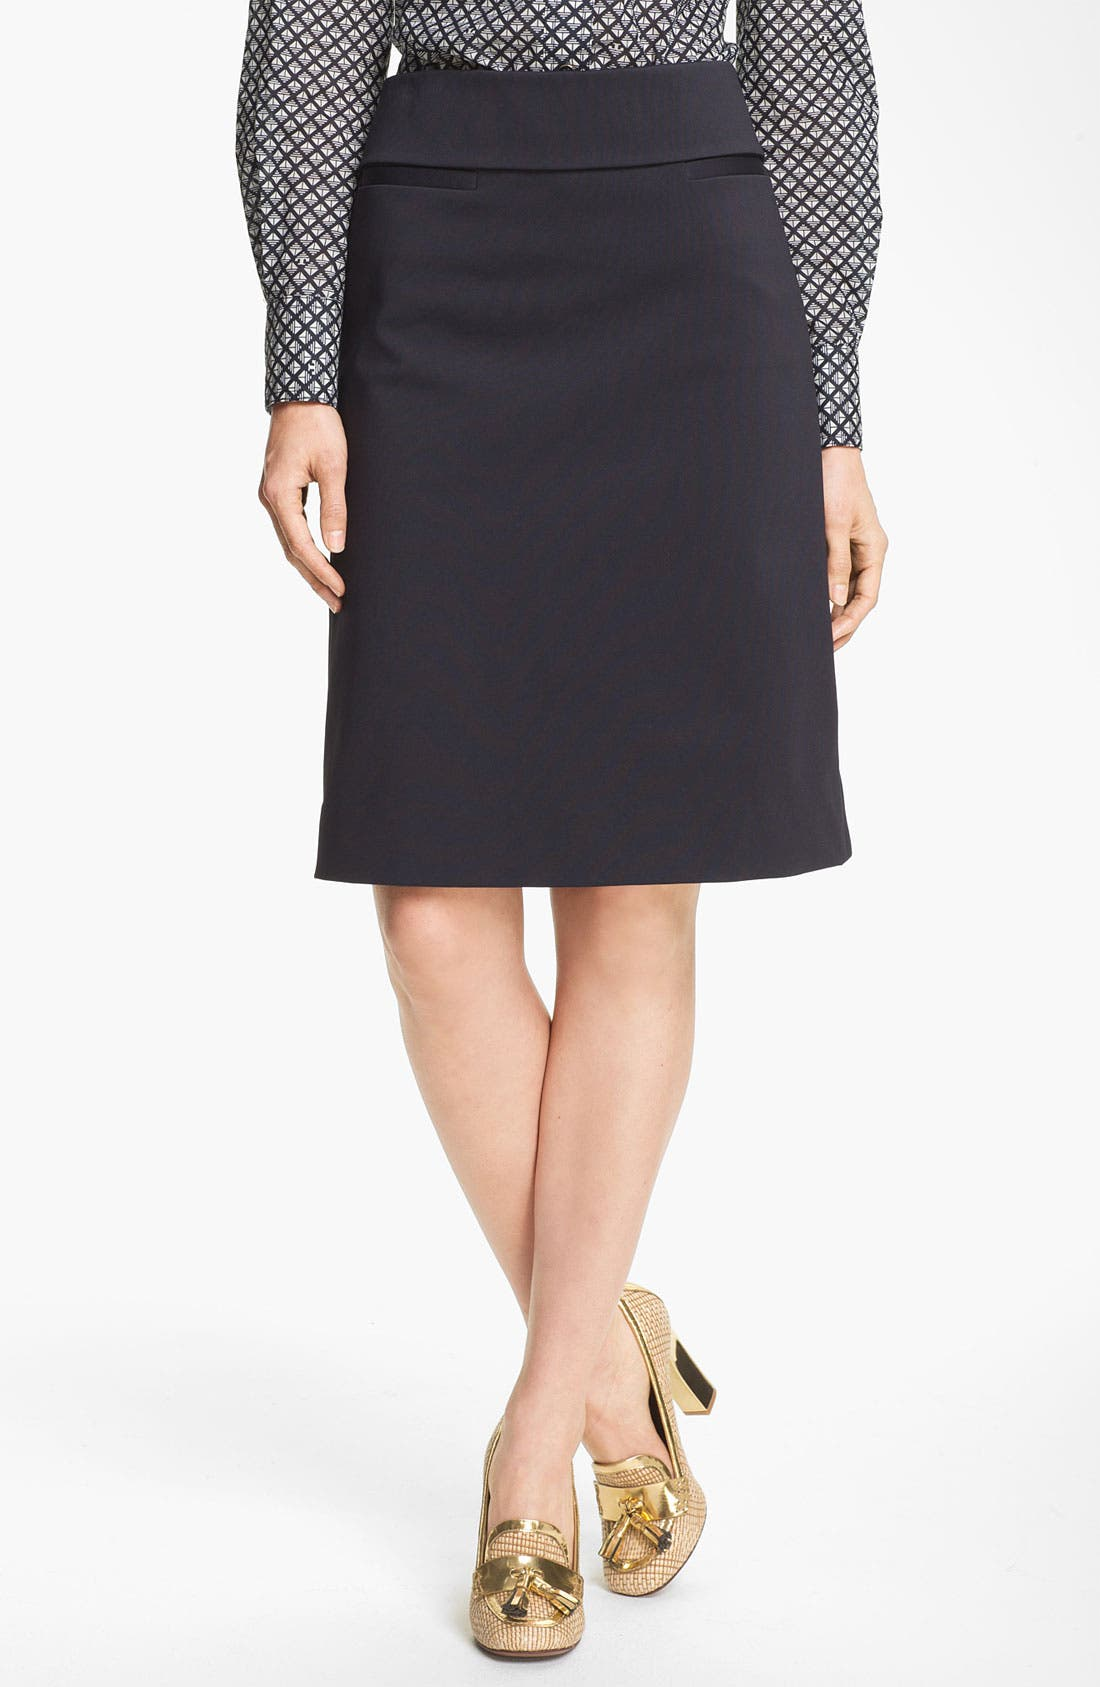 Main Image - Tory Burch 'Isabella' Skirt